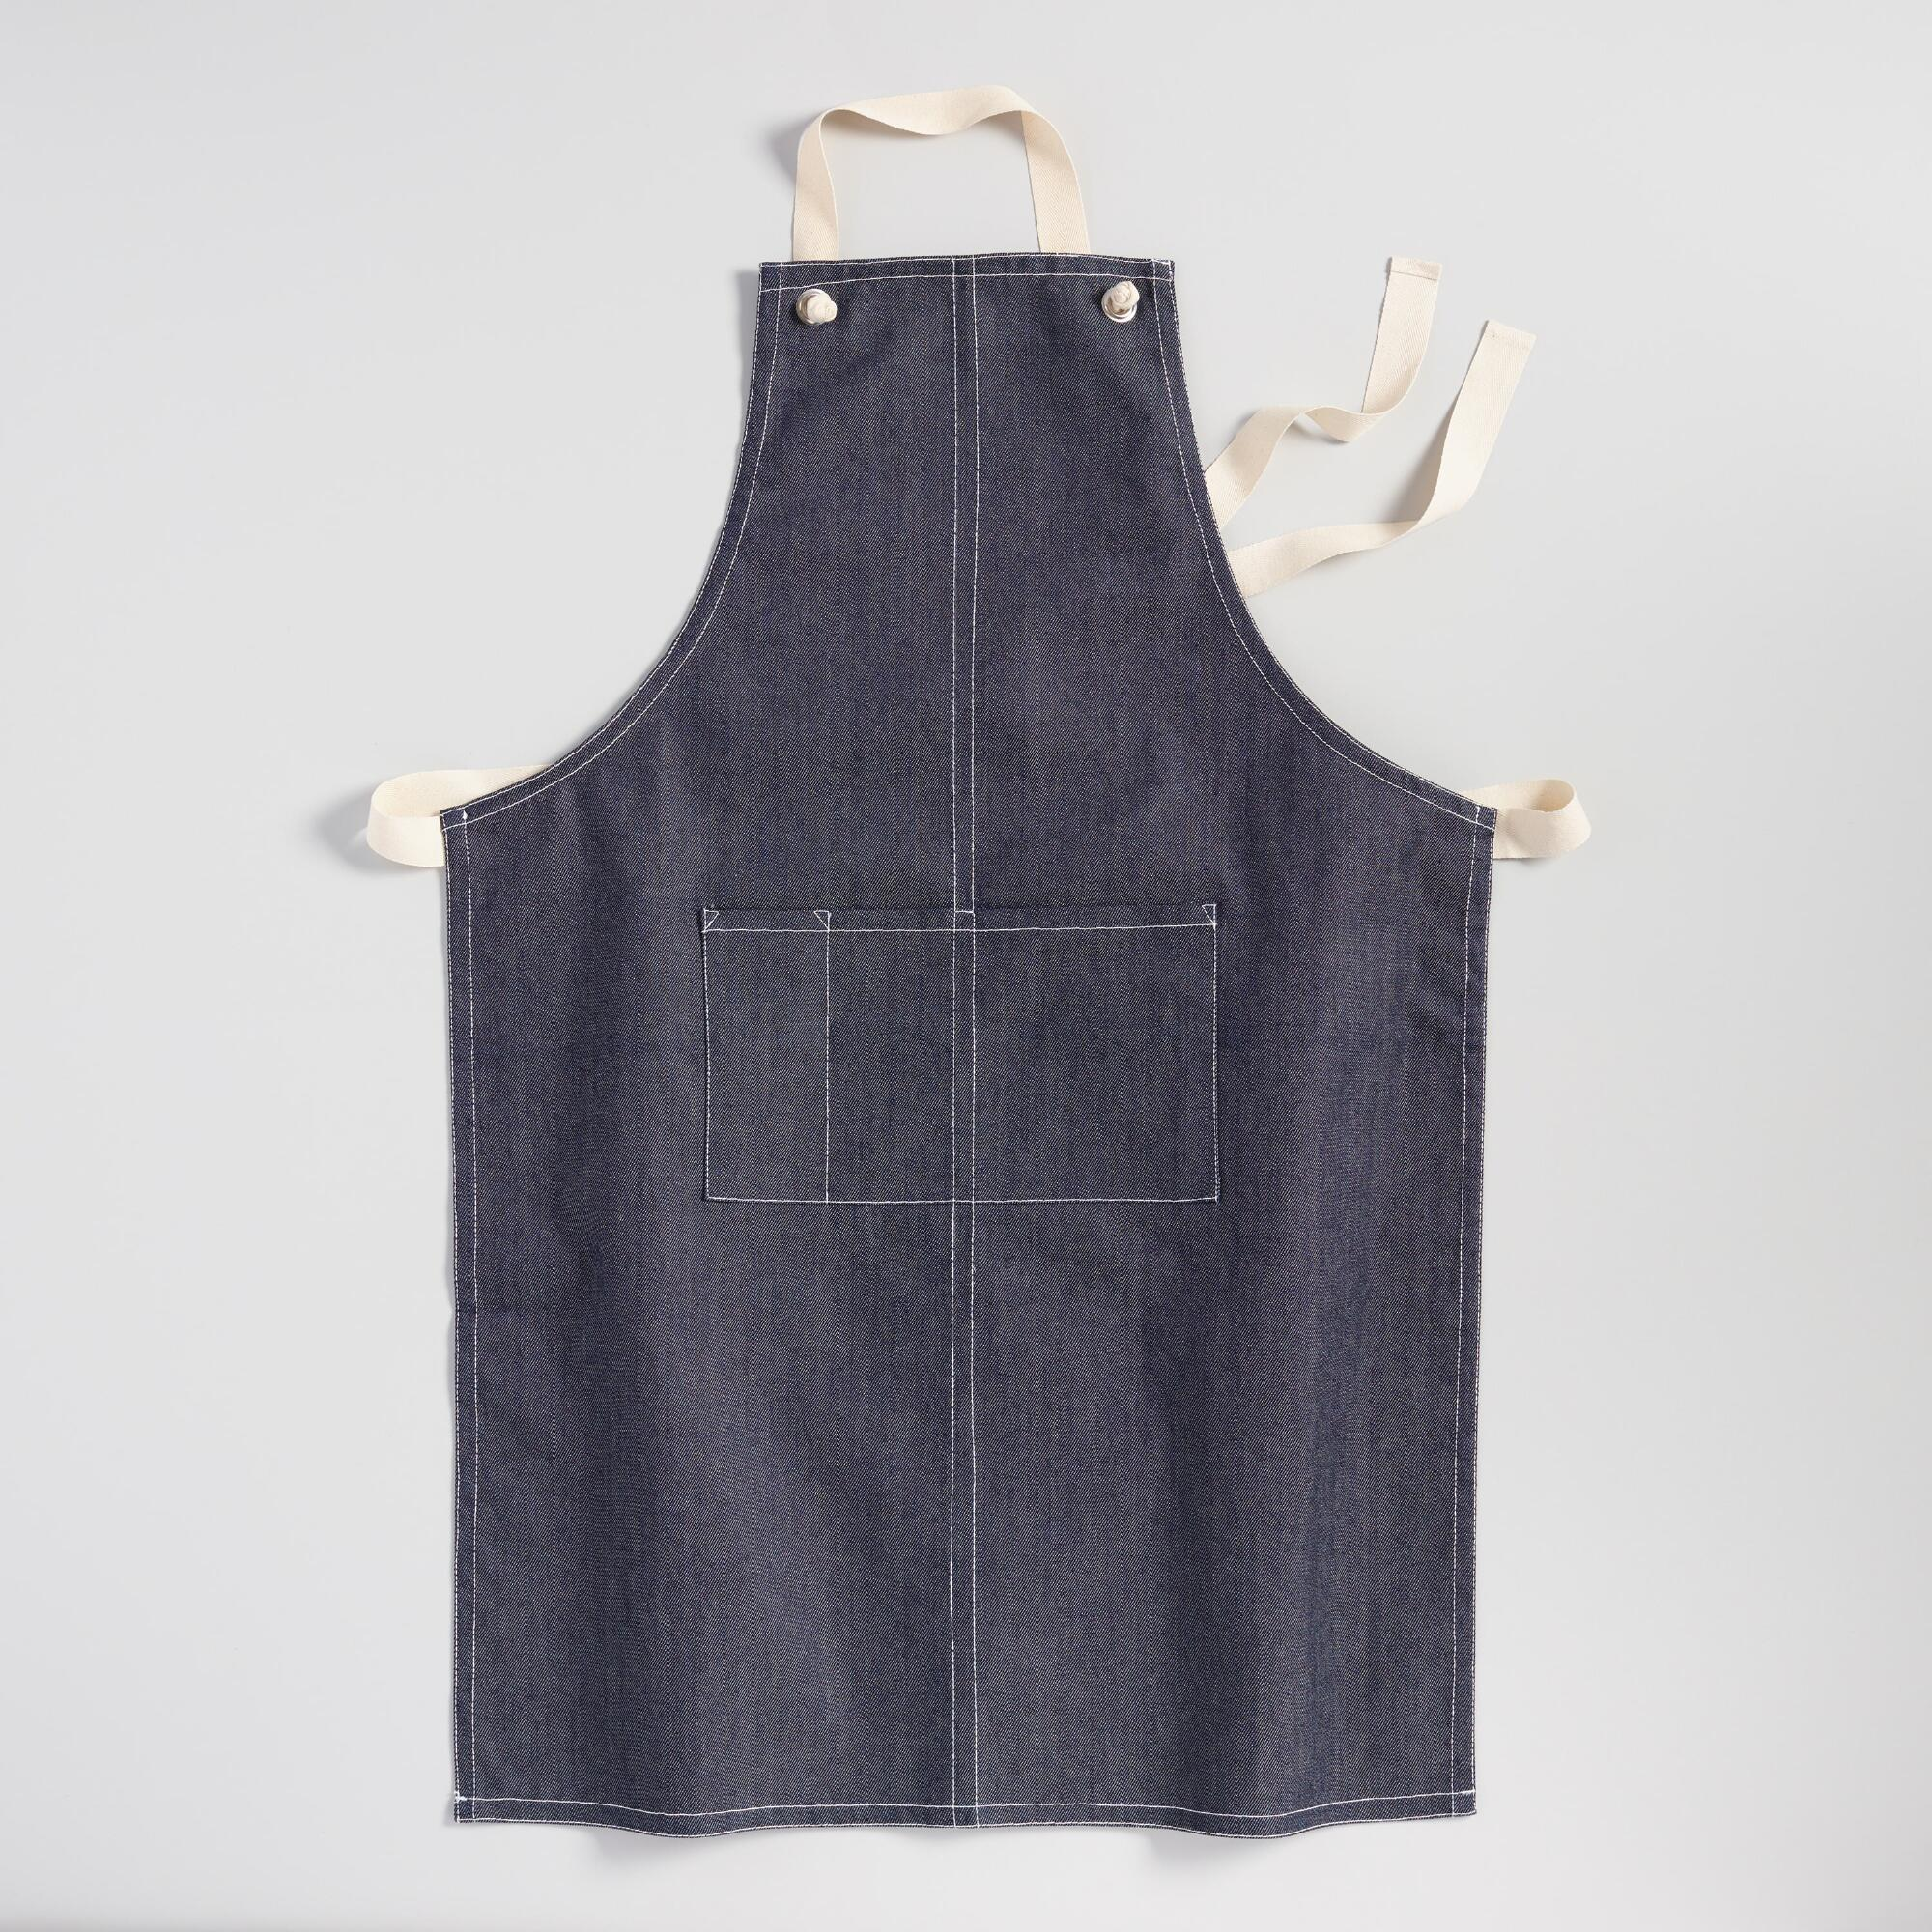 10 Things to Do with Vintage Aprons Denim Chef Style Apron Blue - Cotton by World Market $19.99 AT vintagedancer.com